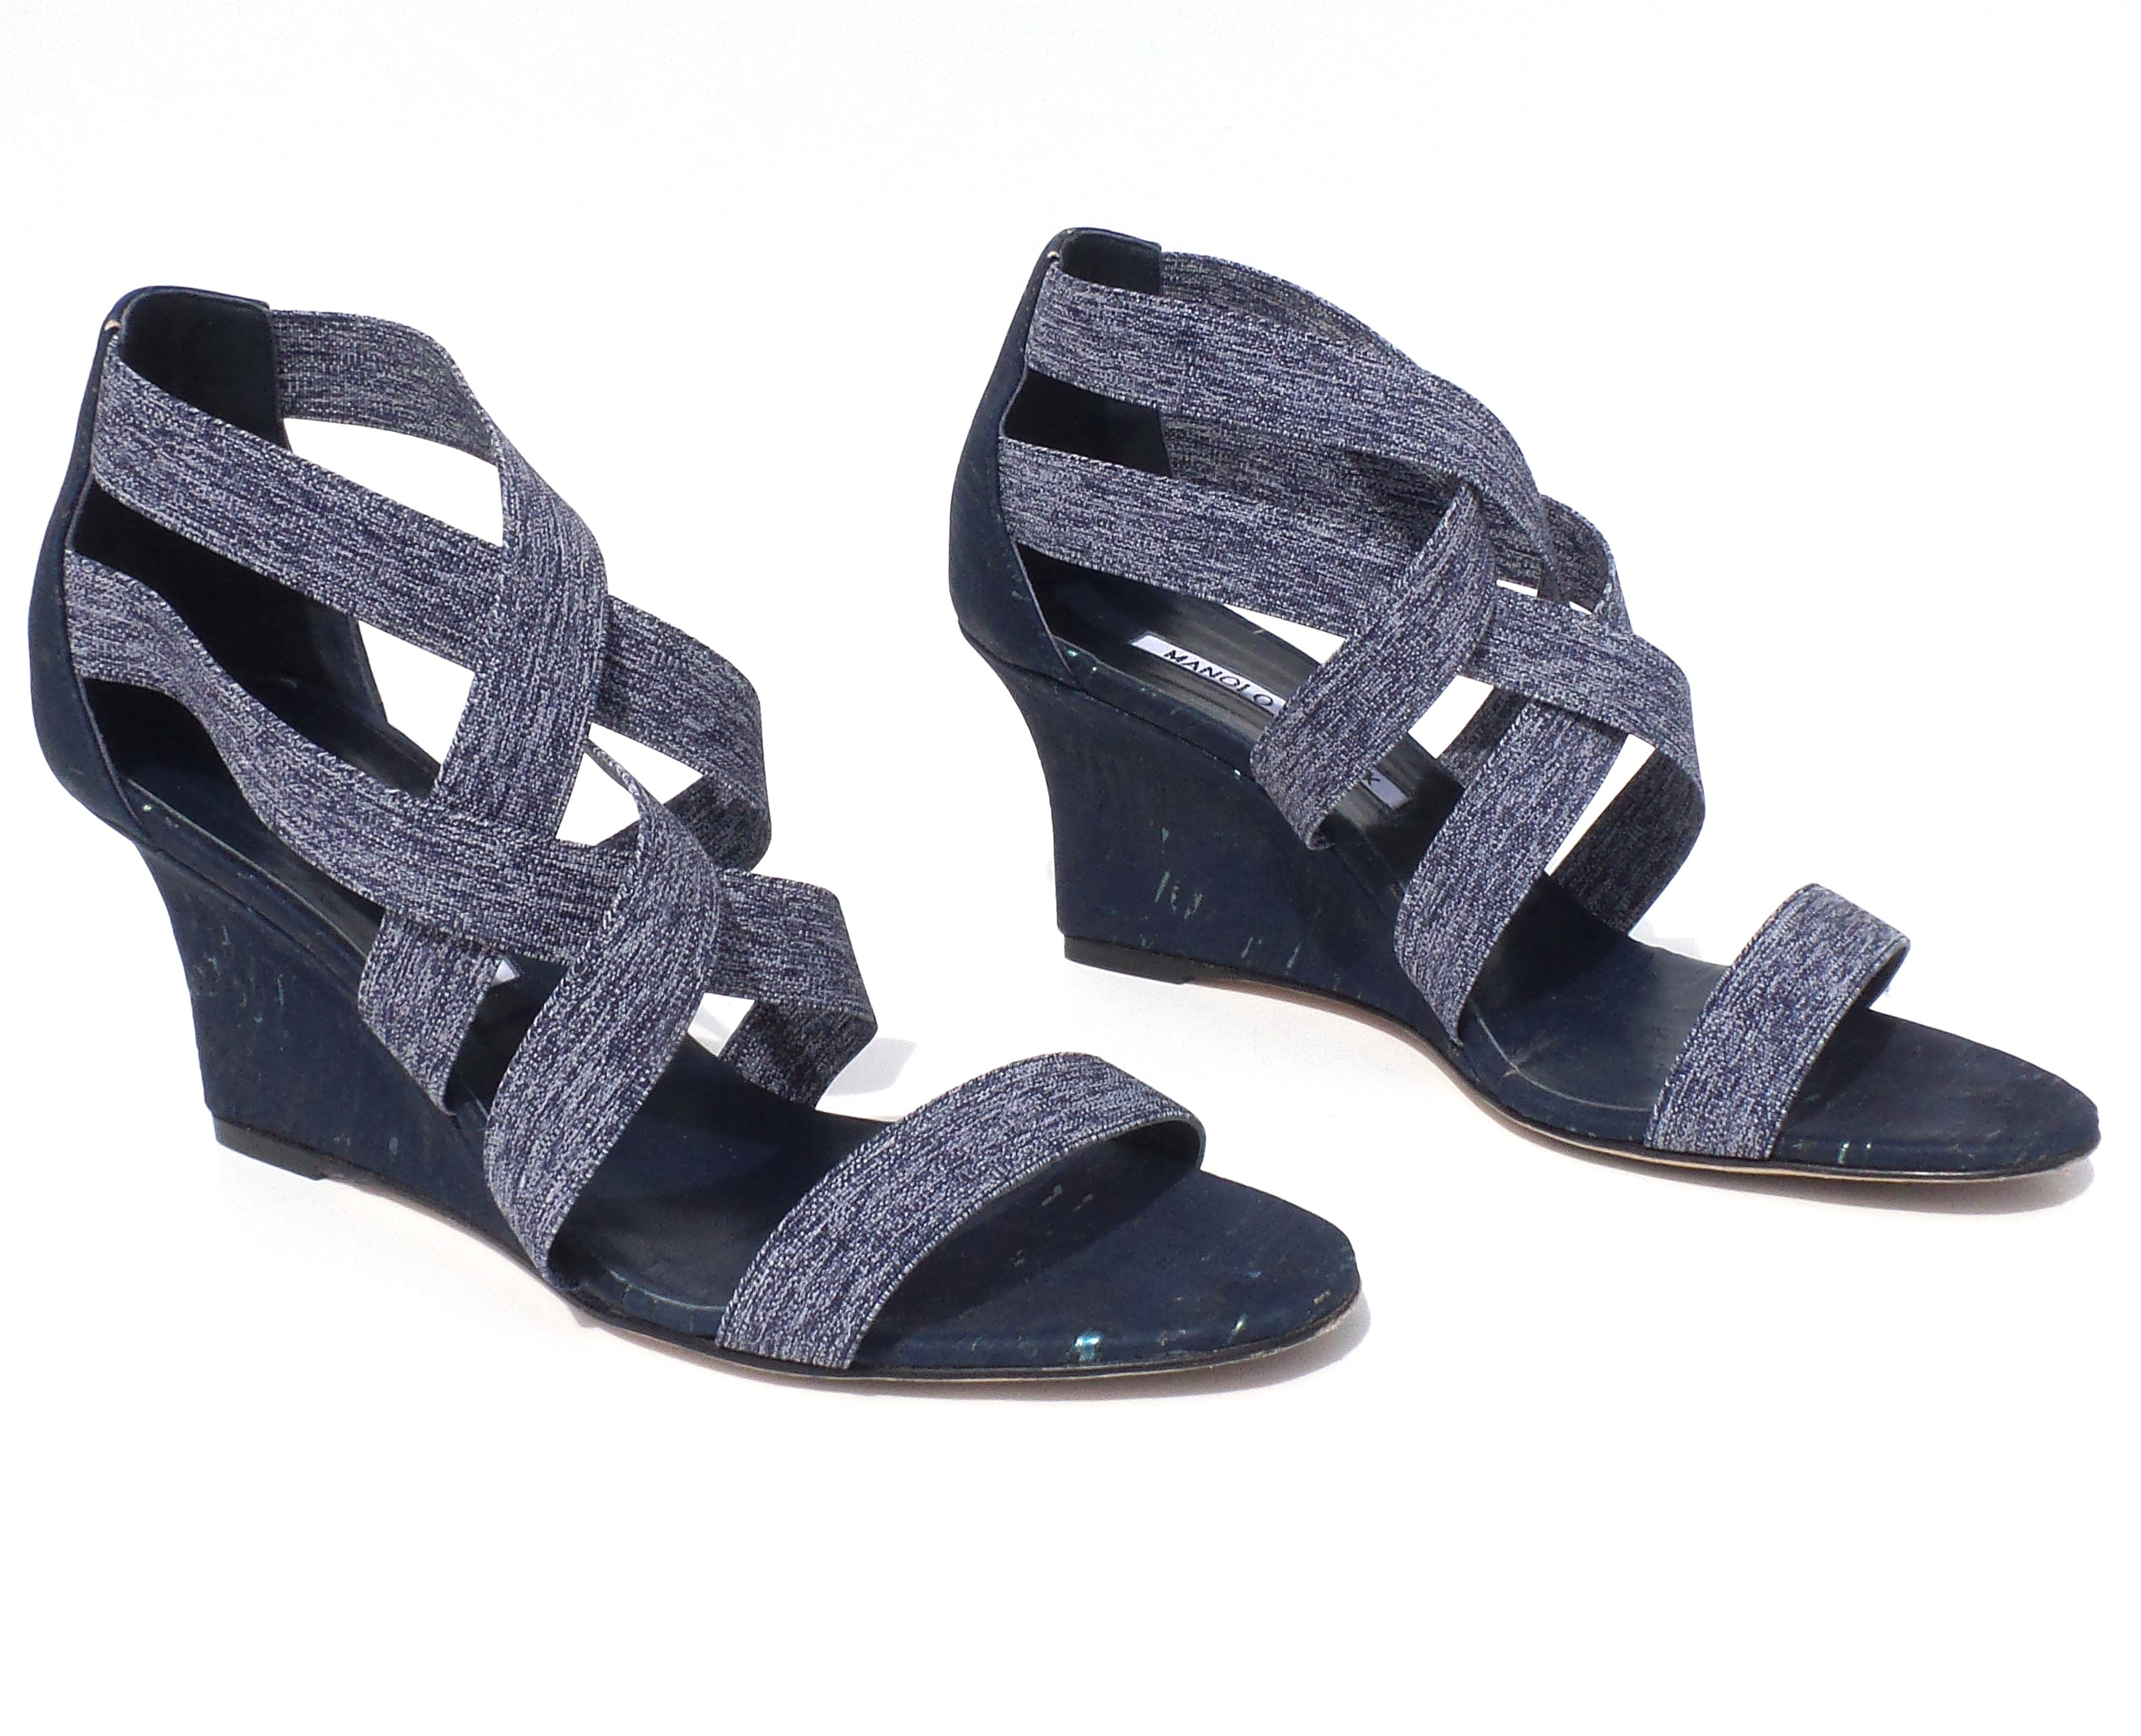 MANOLO BLAHNIK Glassa Blue Cork Denim Strappy Open Toe Wedge Sandals Pumps 38 EC